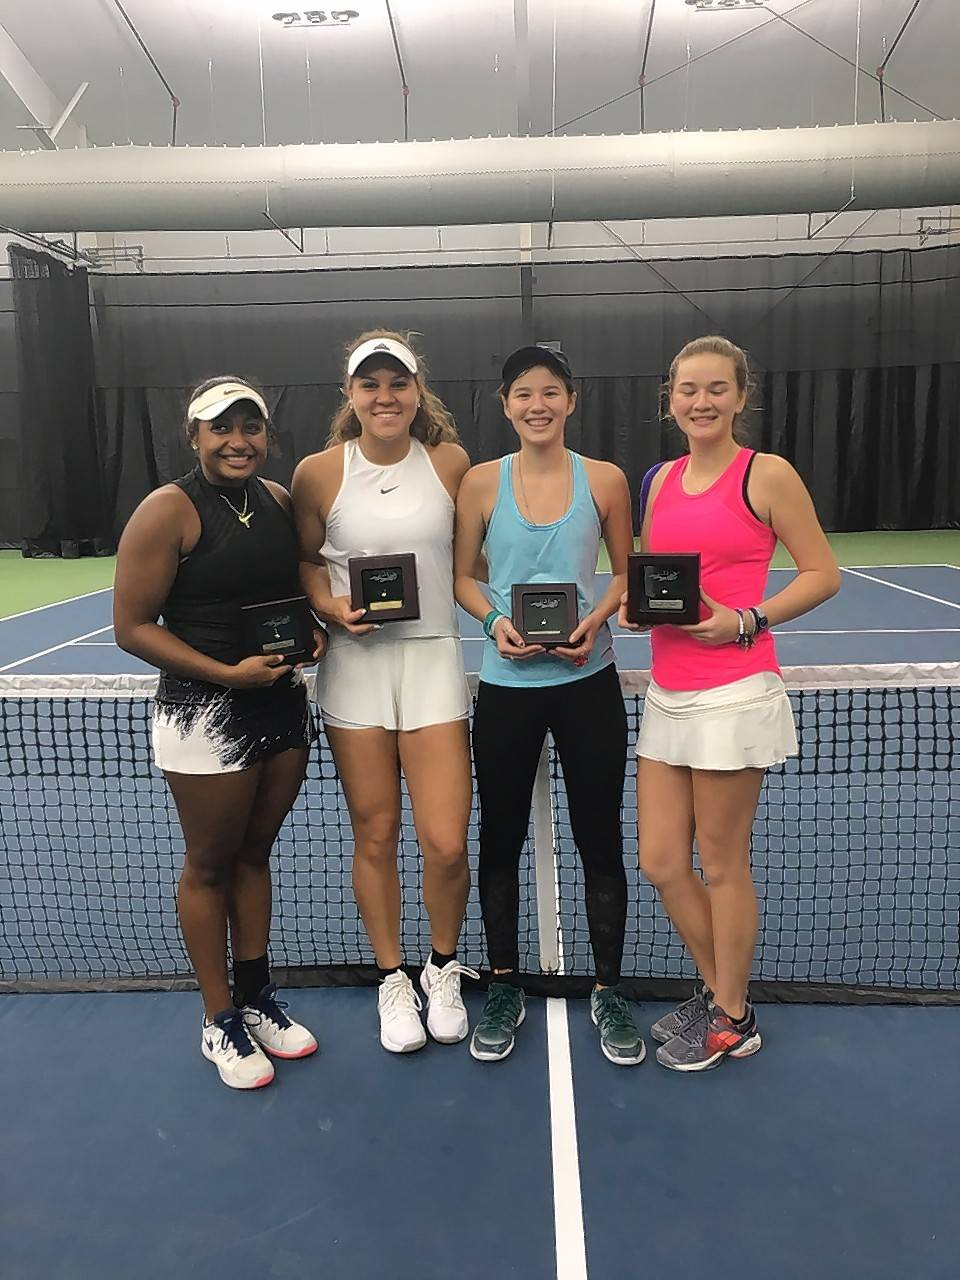 Playing partners Ivana Corley (from left) and Glenbard East's Kolie Allen defeated Clarissa and Christina Hand on Jan. 2 in Orlando to capture the United States Tennis Association National Winter Championships Girls 18s doubles title.